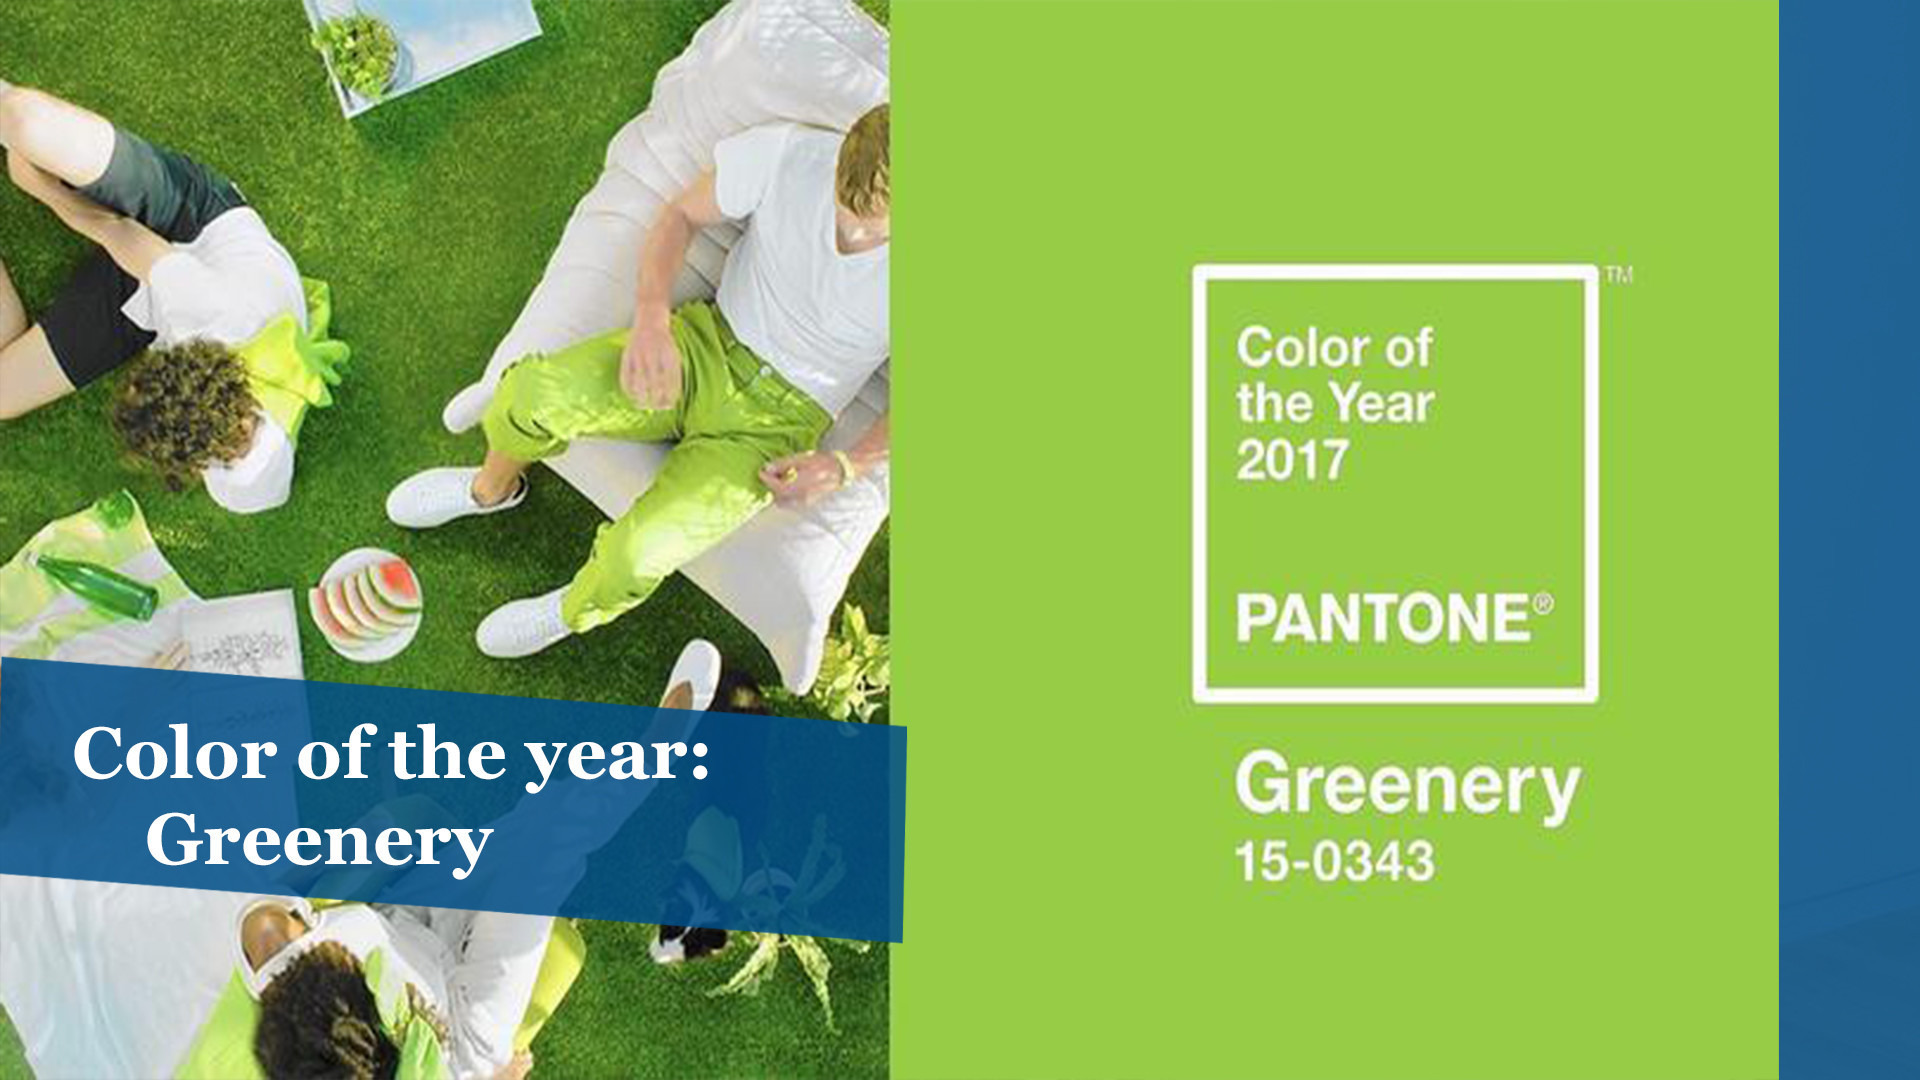 greenery 2017 pantone color of the year chicago tribune